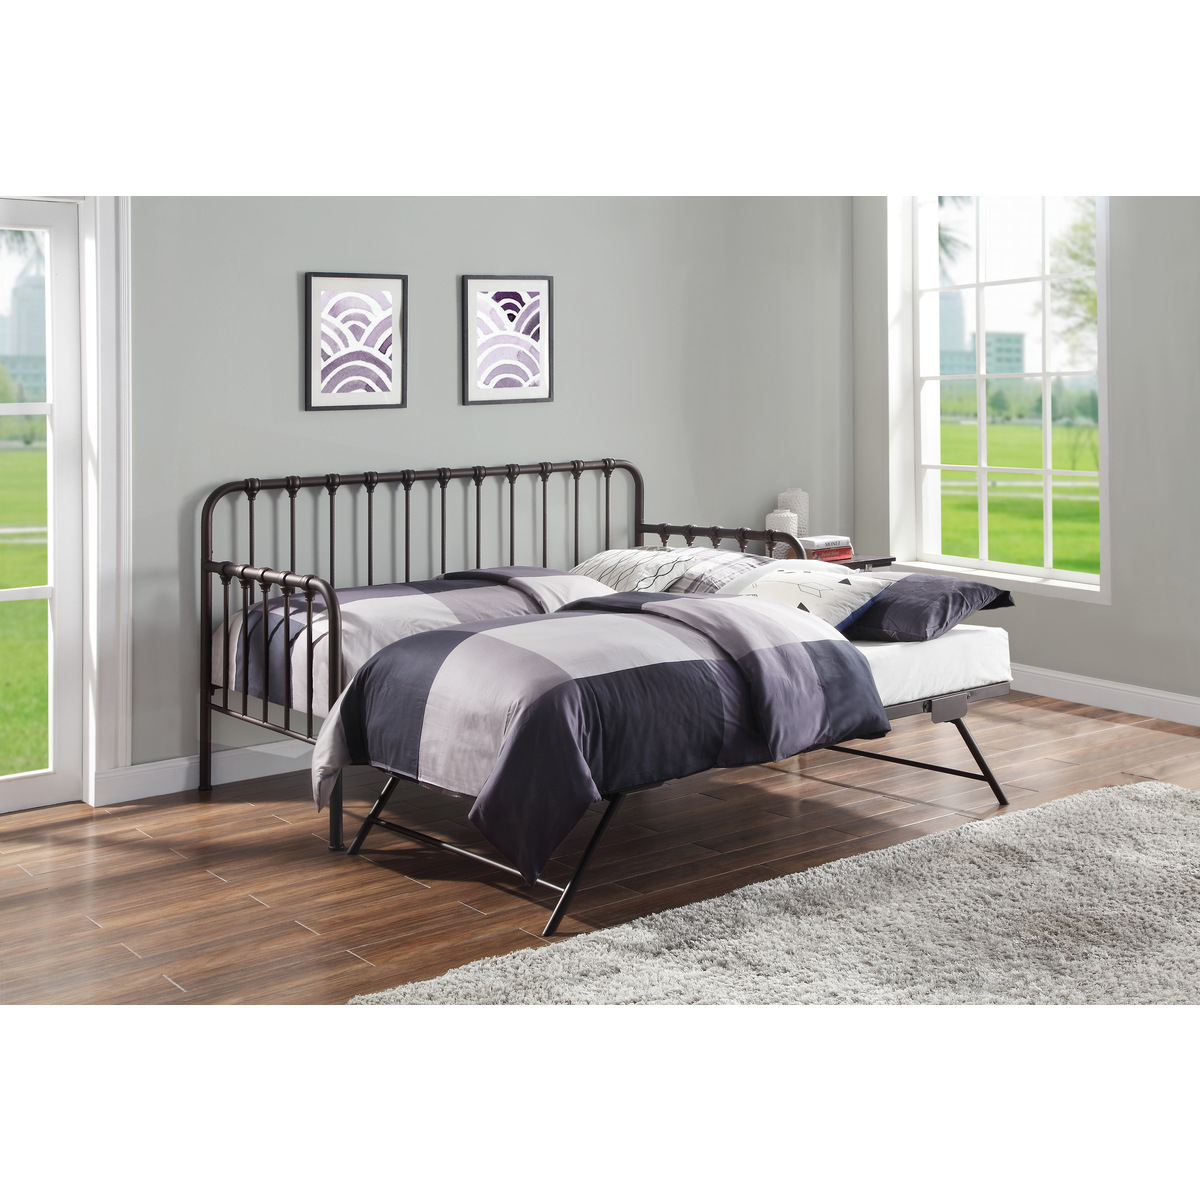 4983DZ-NT DAYBED WITH LIFT-UP TRUNDLE, DARK BRONZE